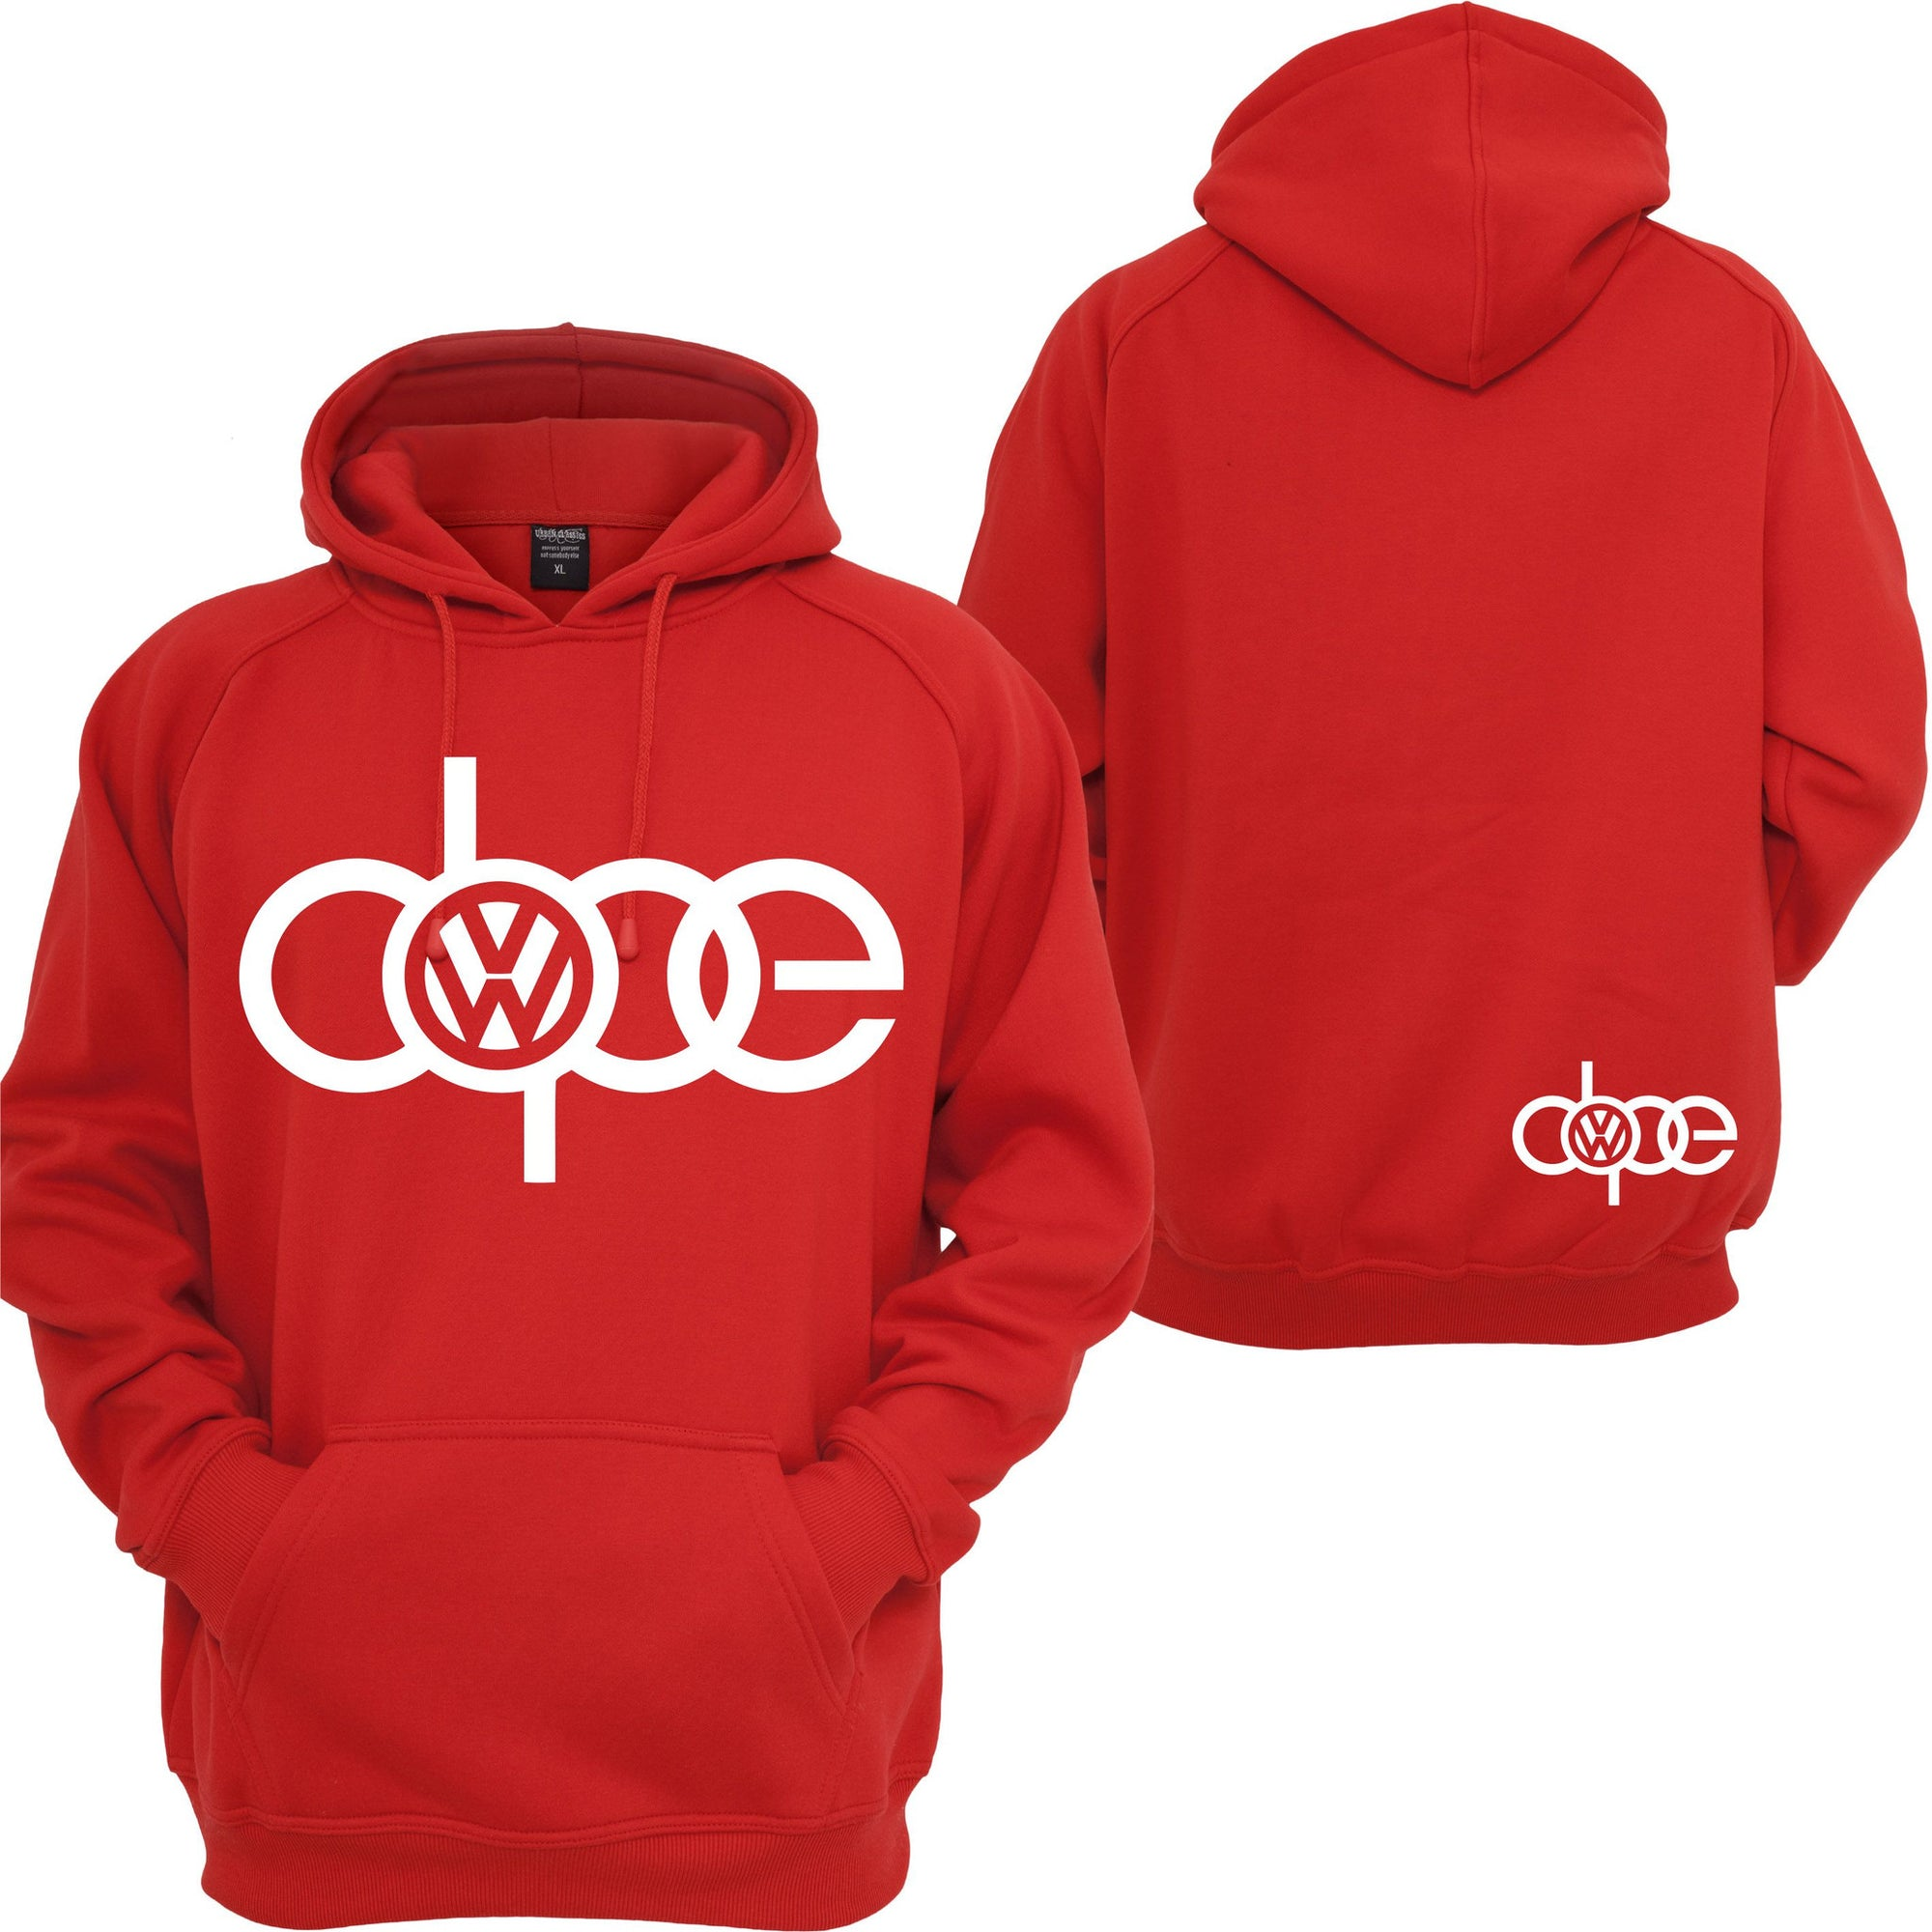 AUDI RACE CAR HOODIE ECG HEARTBEAT UNISEX SWEAT SHIRT DOPE SWAG FASHION A2 A4 A6